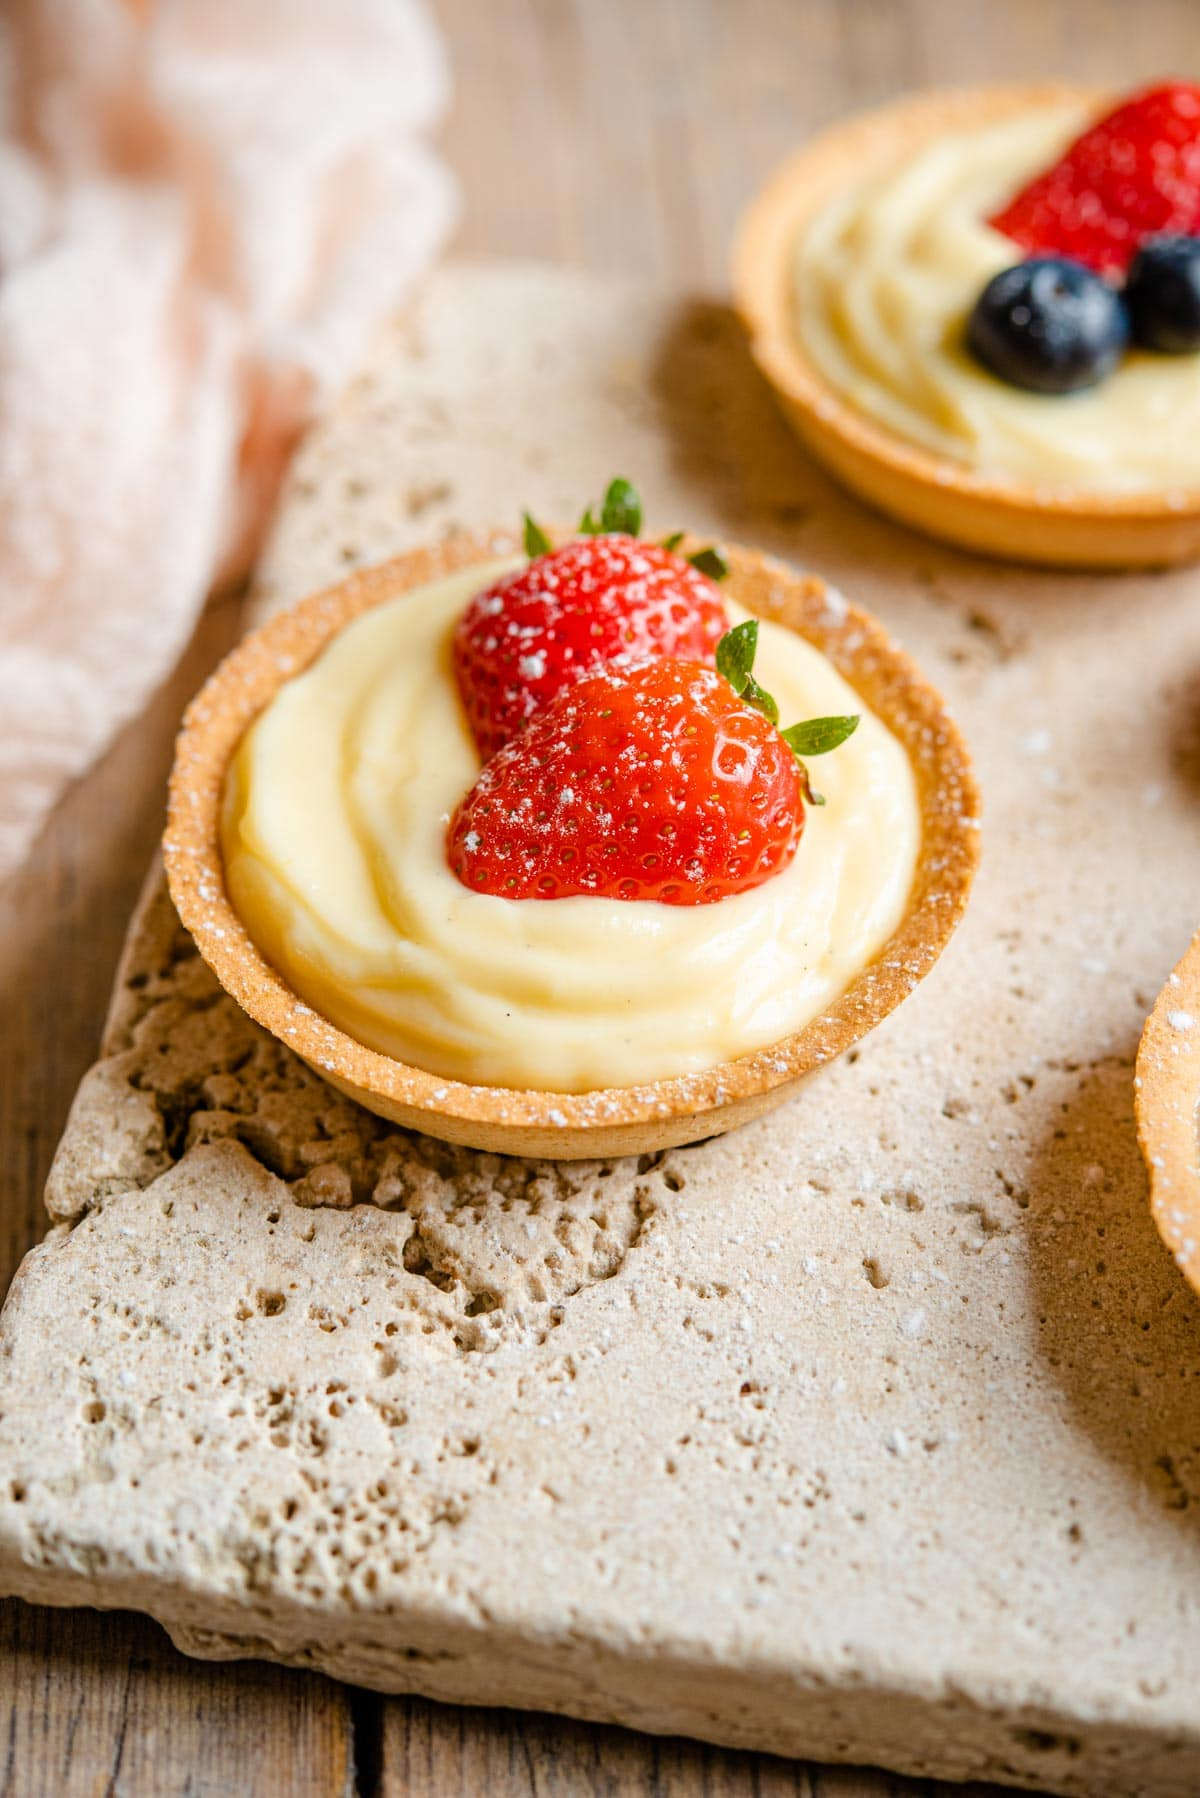 A small individual sized pie crust filled with Italian pastry cream and topped with two slices of strawberry.